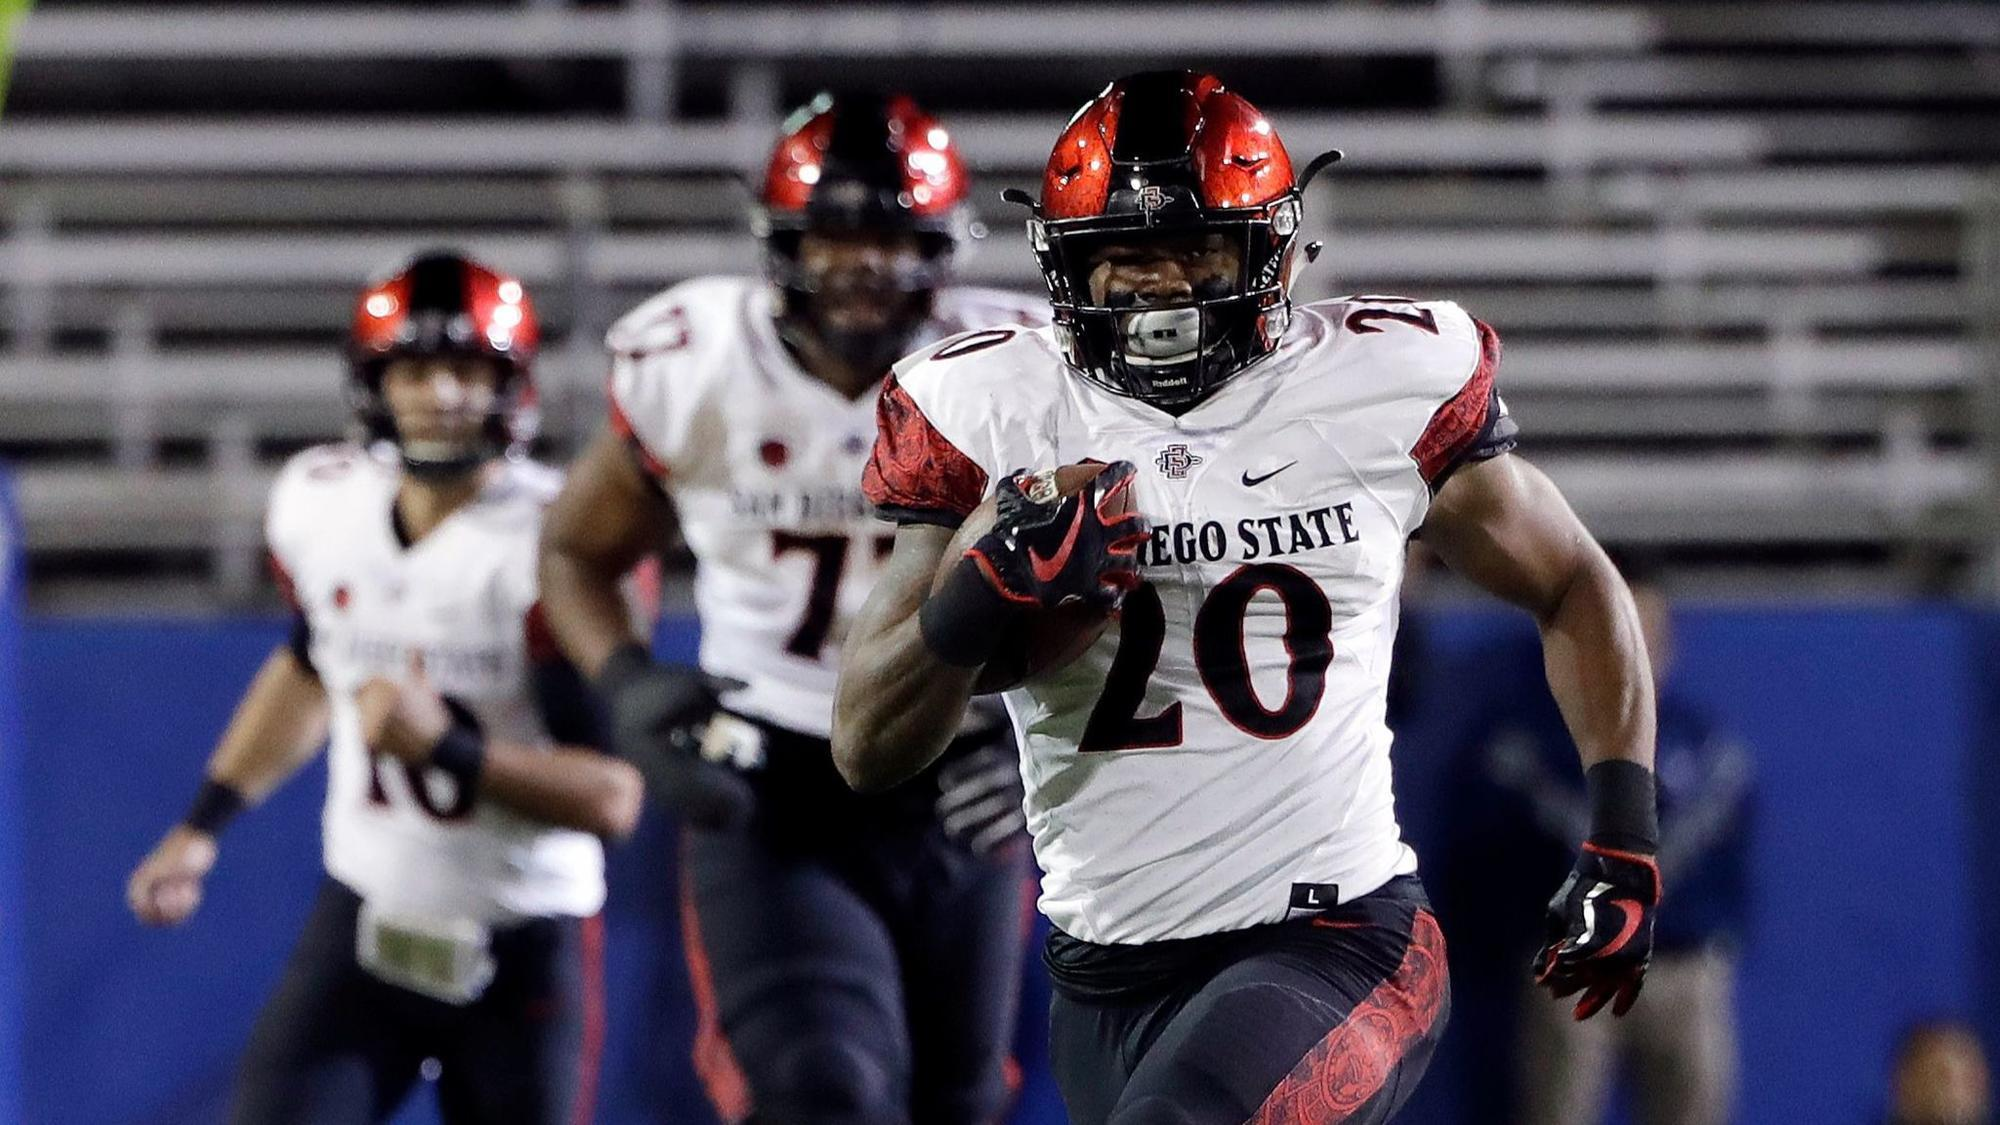 Sd-sp-azfoot-rashaad-penny-sports-illustrated-all-american-1208